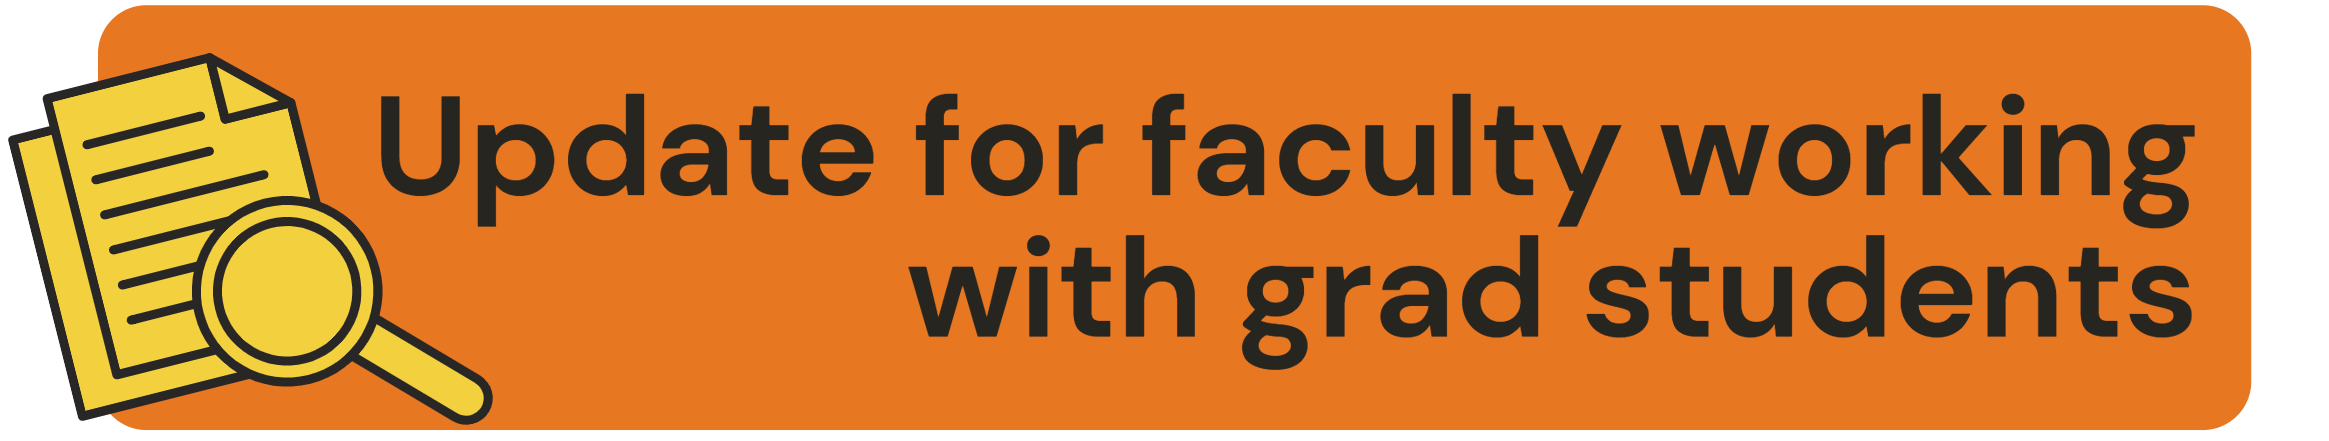 Update for faculty working with grad students (black text on orange background with yellow clipart papers and black magnifying glass)